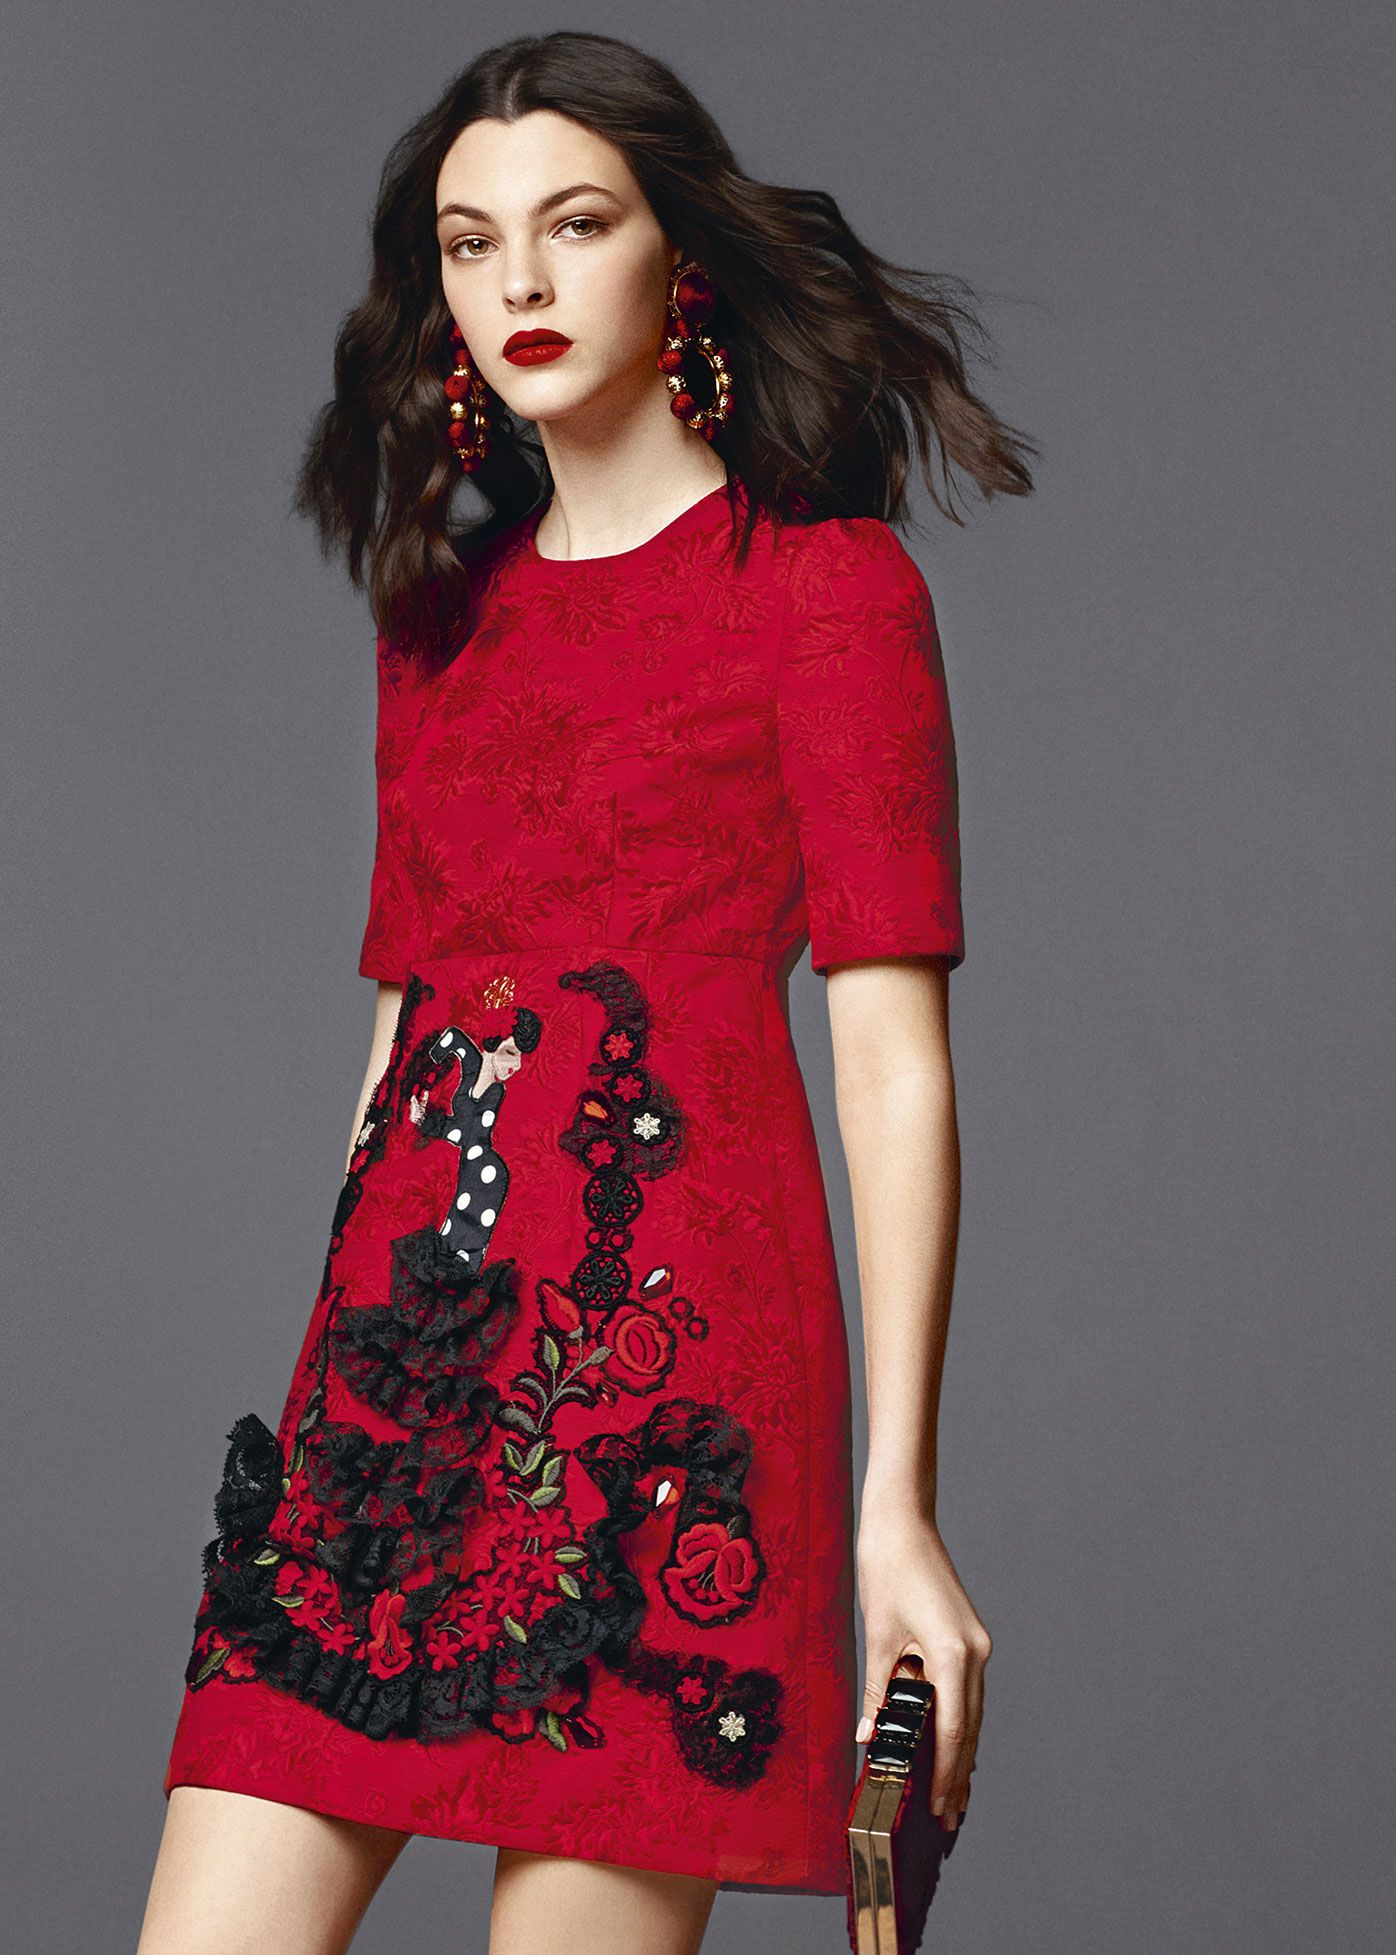 a29508120 Dolce & Gabbana Women's Clothing Collection Summer 2015 Short Sleeve  Dresses, Dresses With Sleeves